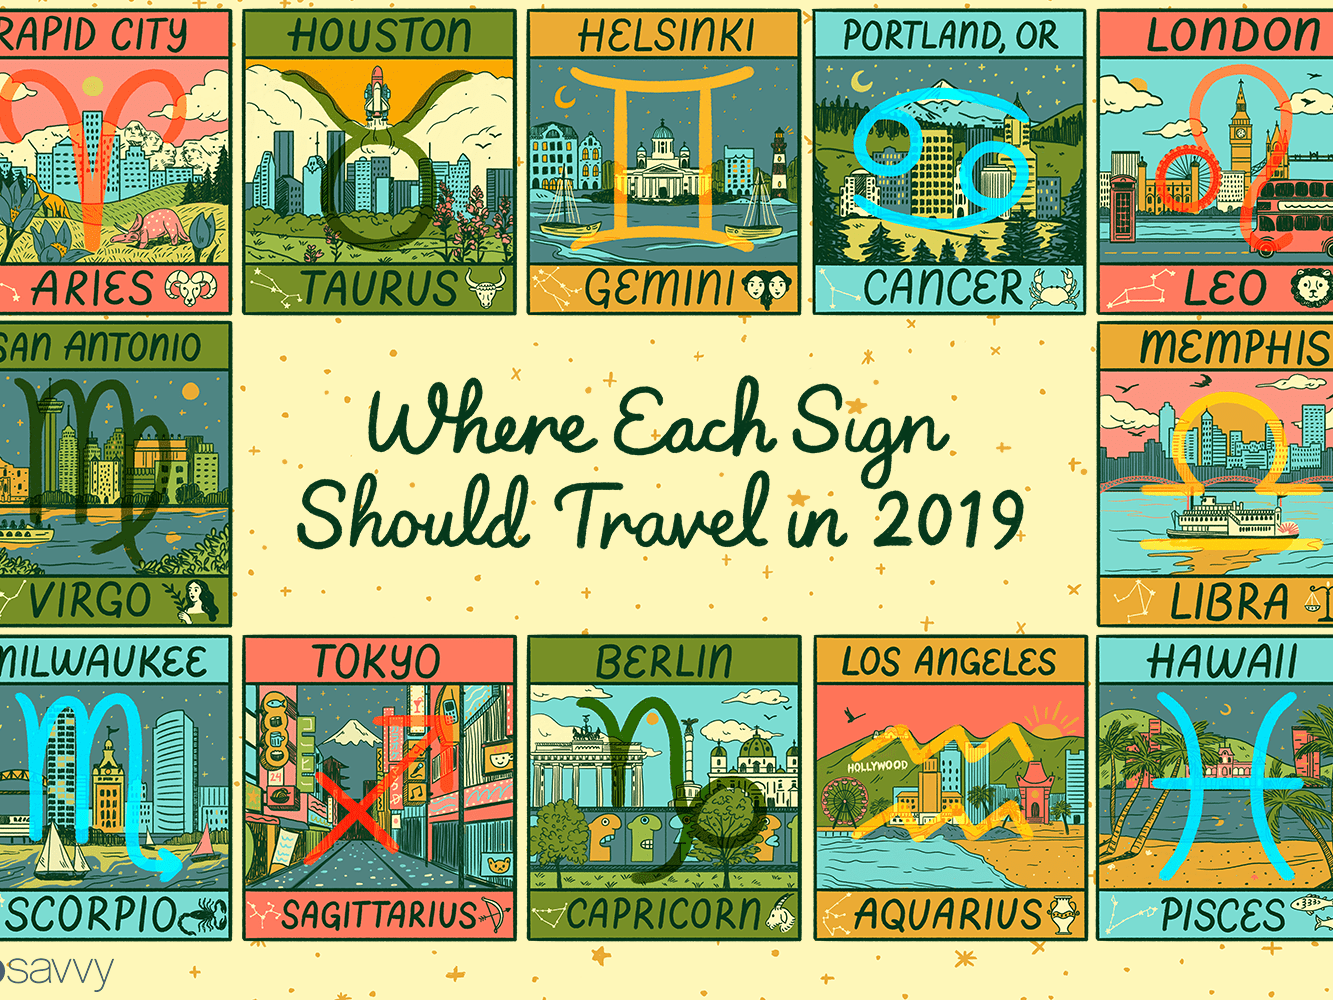 The Best Vacation Destinations in 2019 Based On Your Zodiac Sign